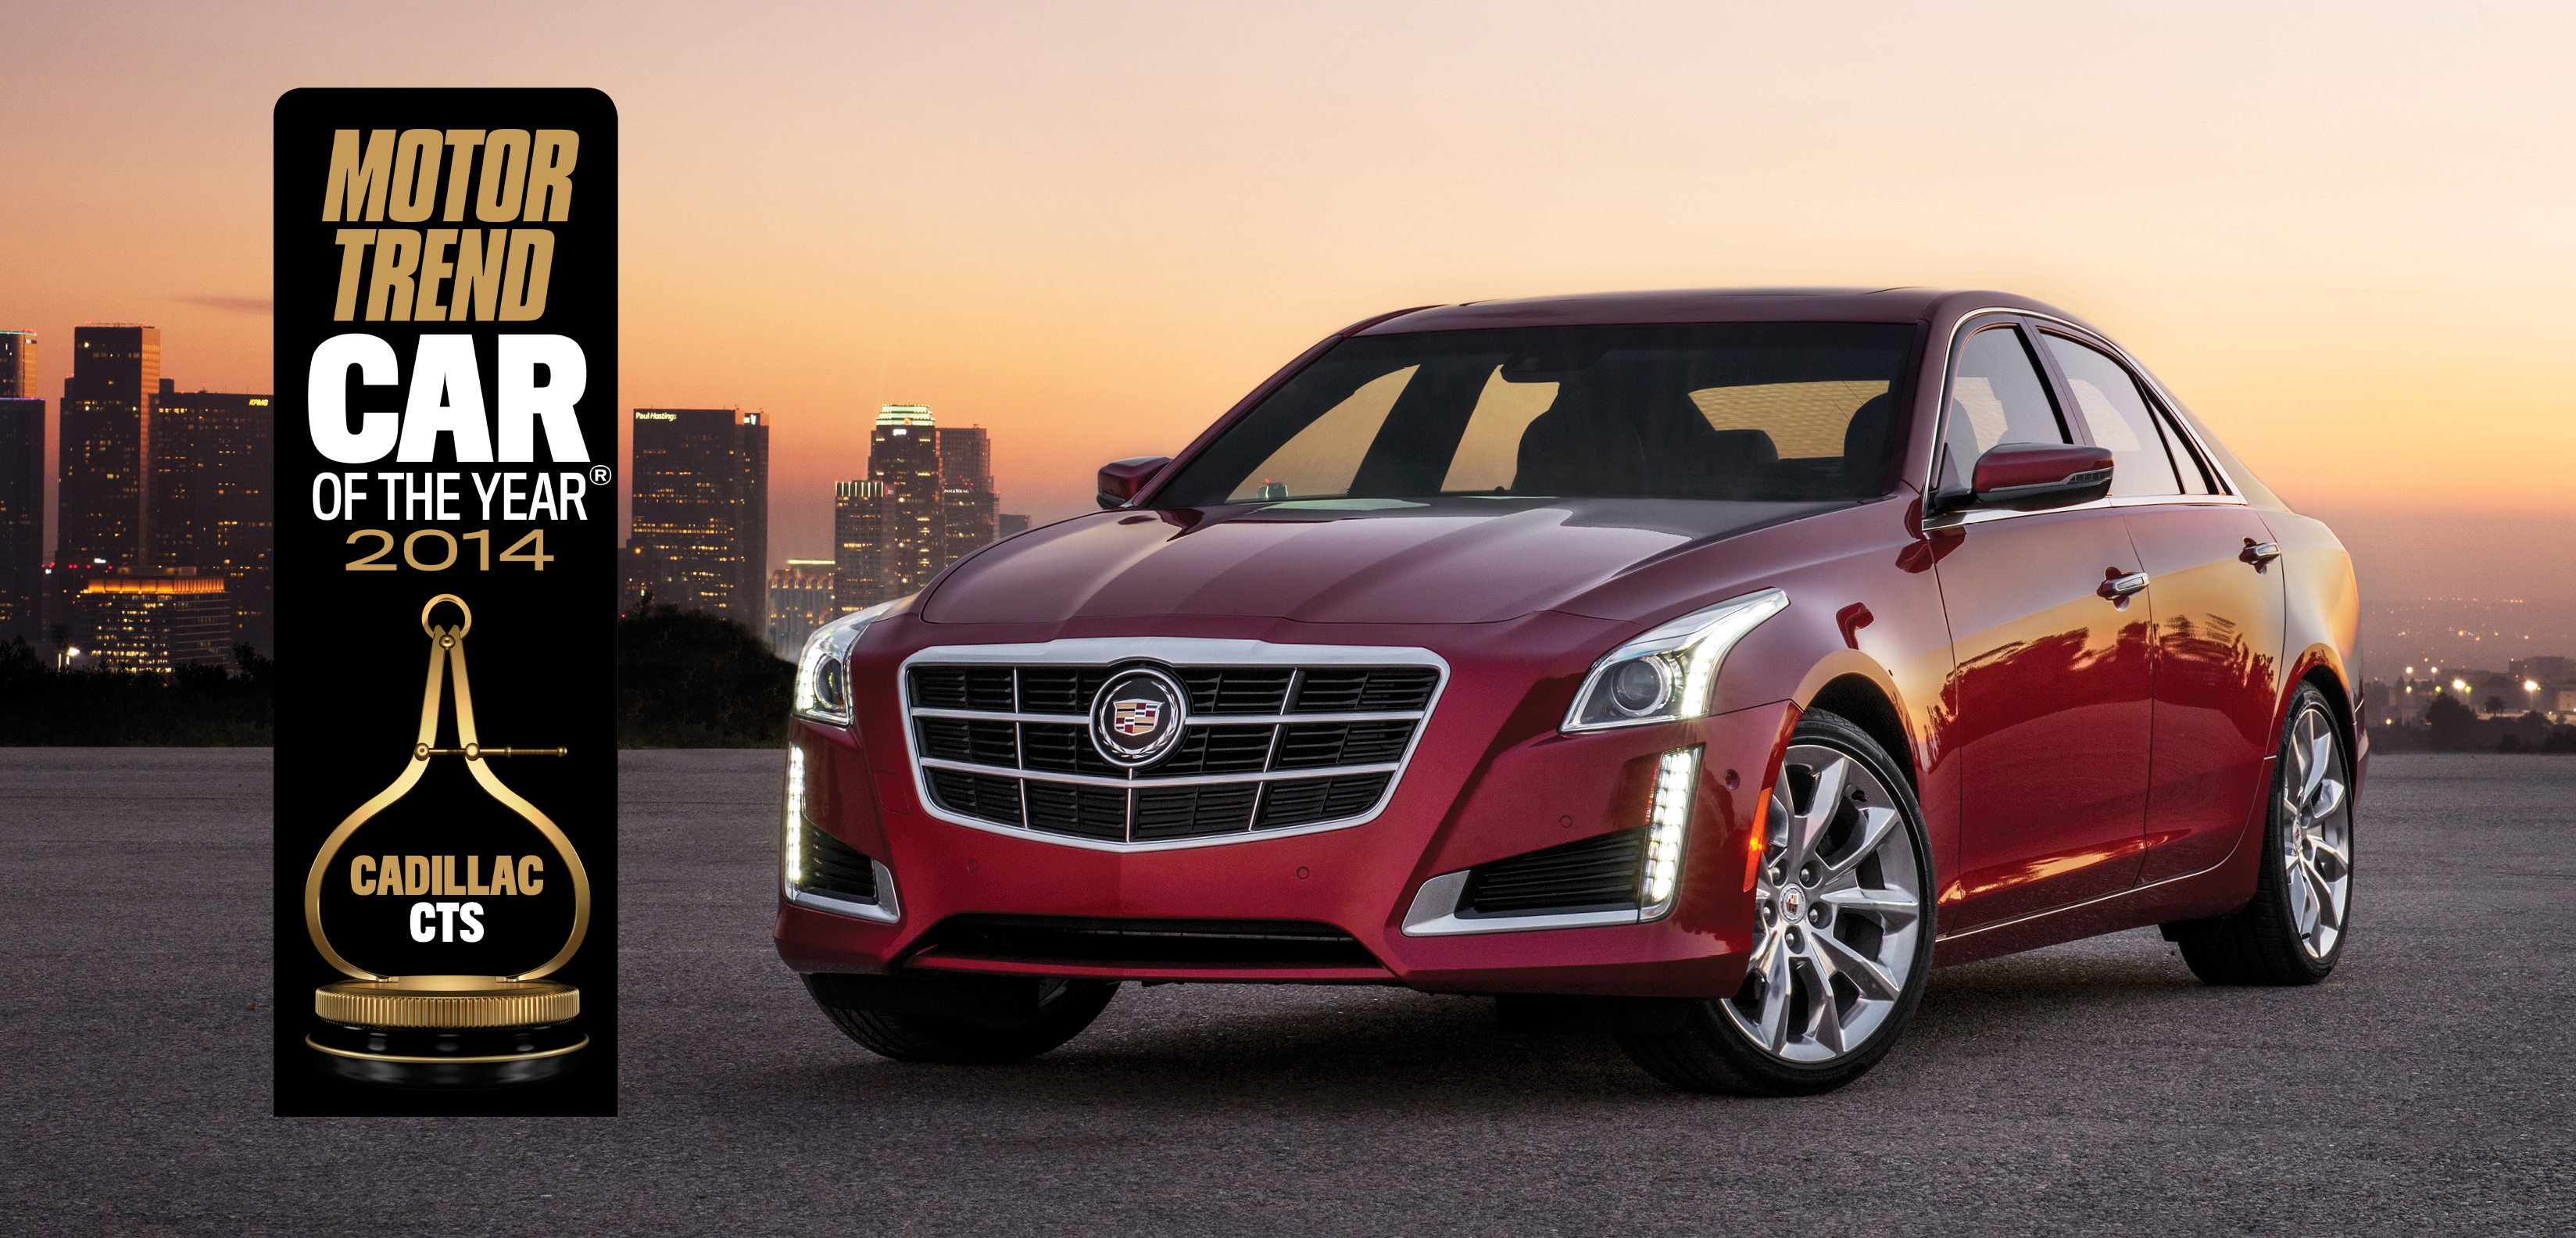 Cadillac CTS Scores Second Motor Trend Car of the Year Award